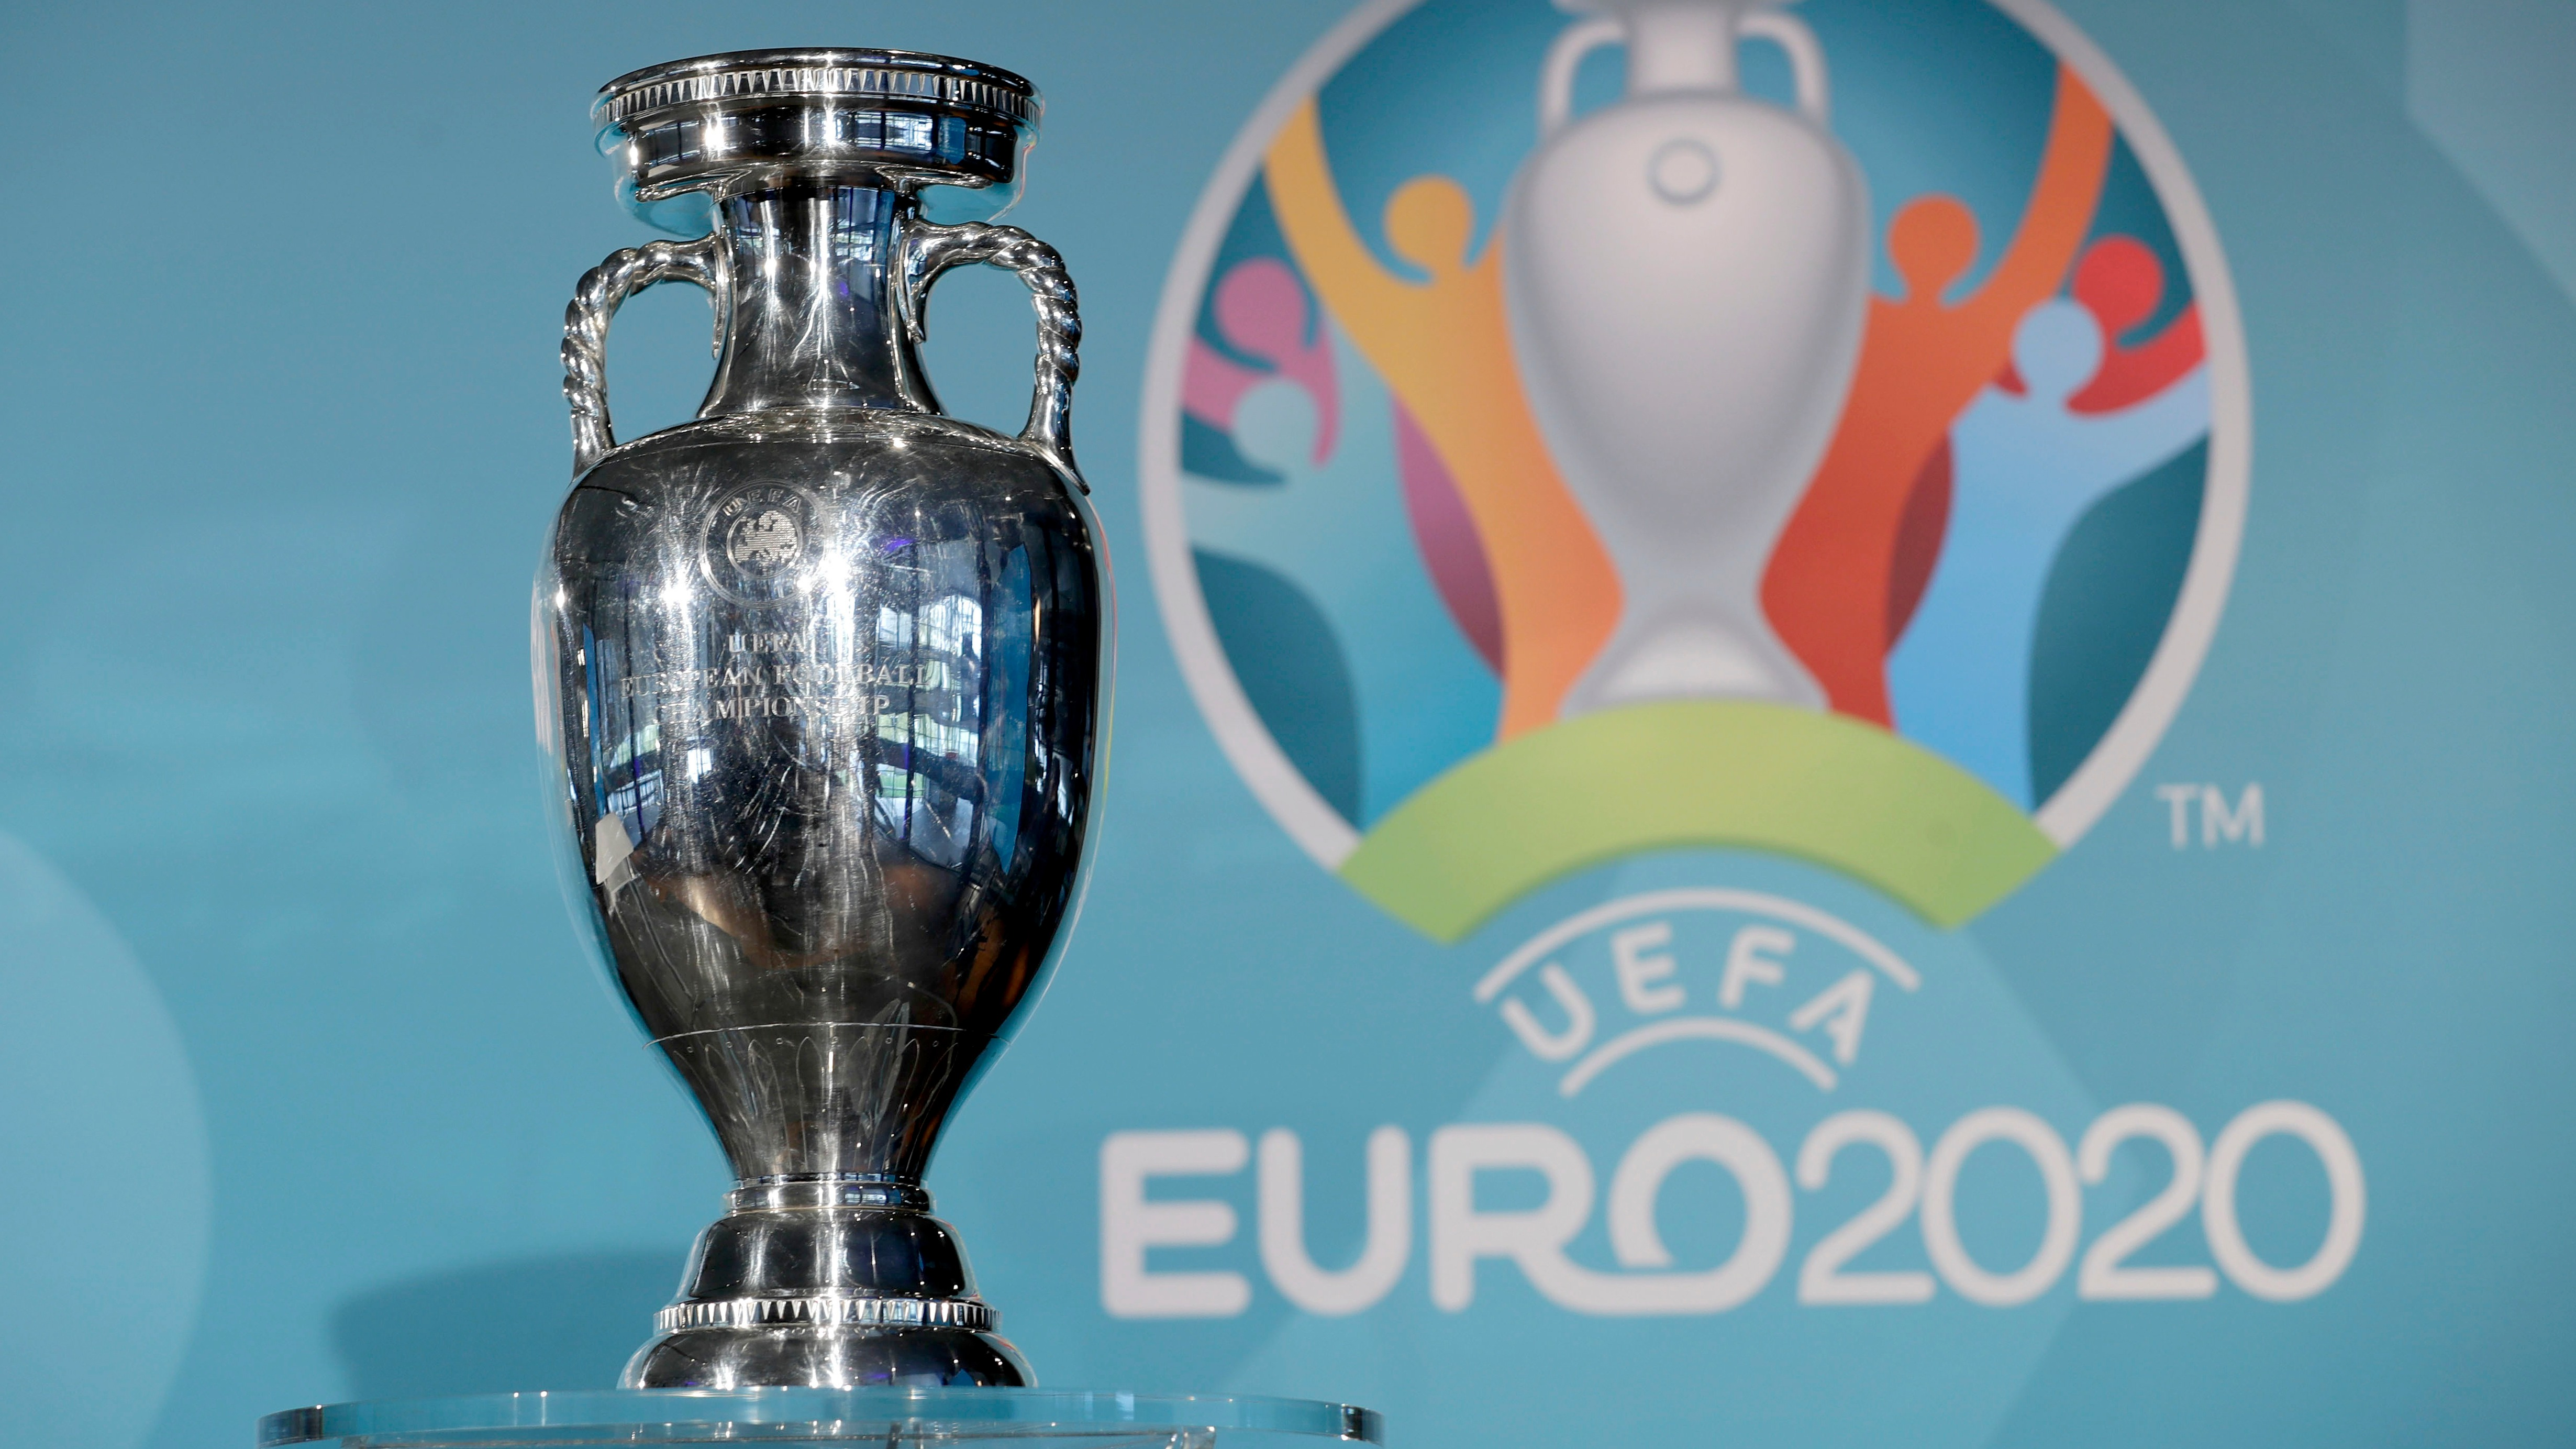 Watch Euro 2020 on ITV this summer